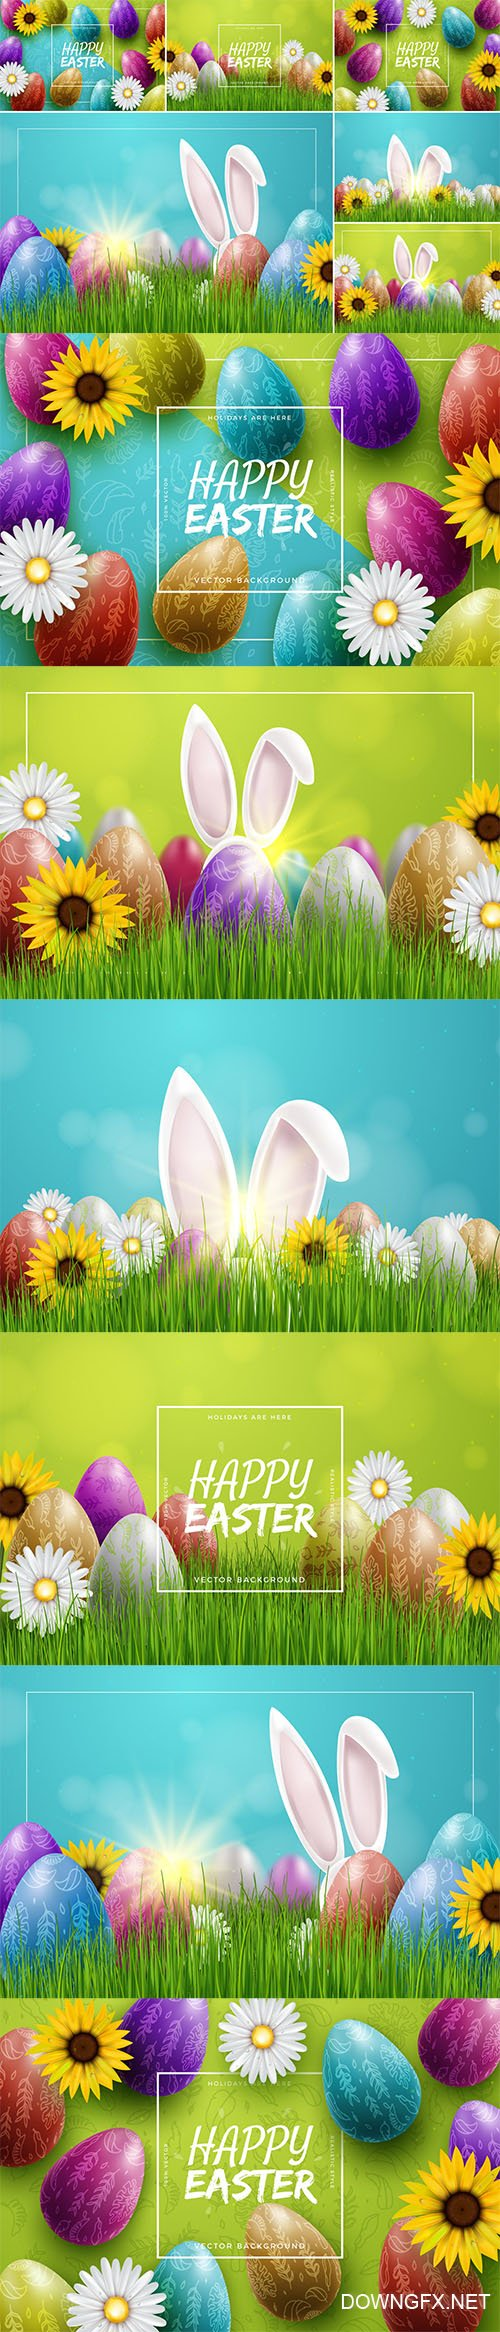 Colorful Easter Backgrounds